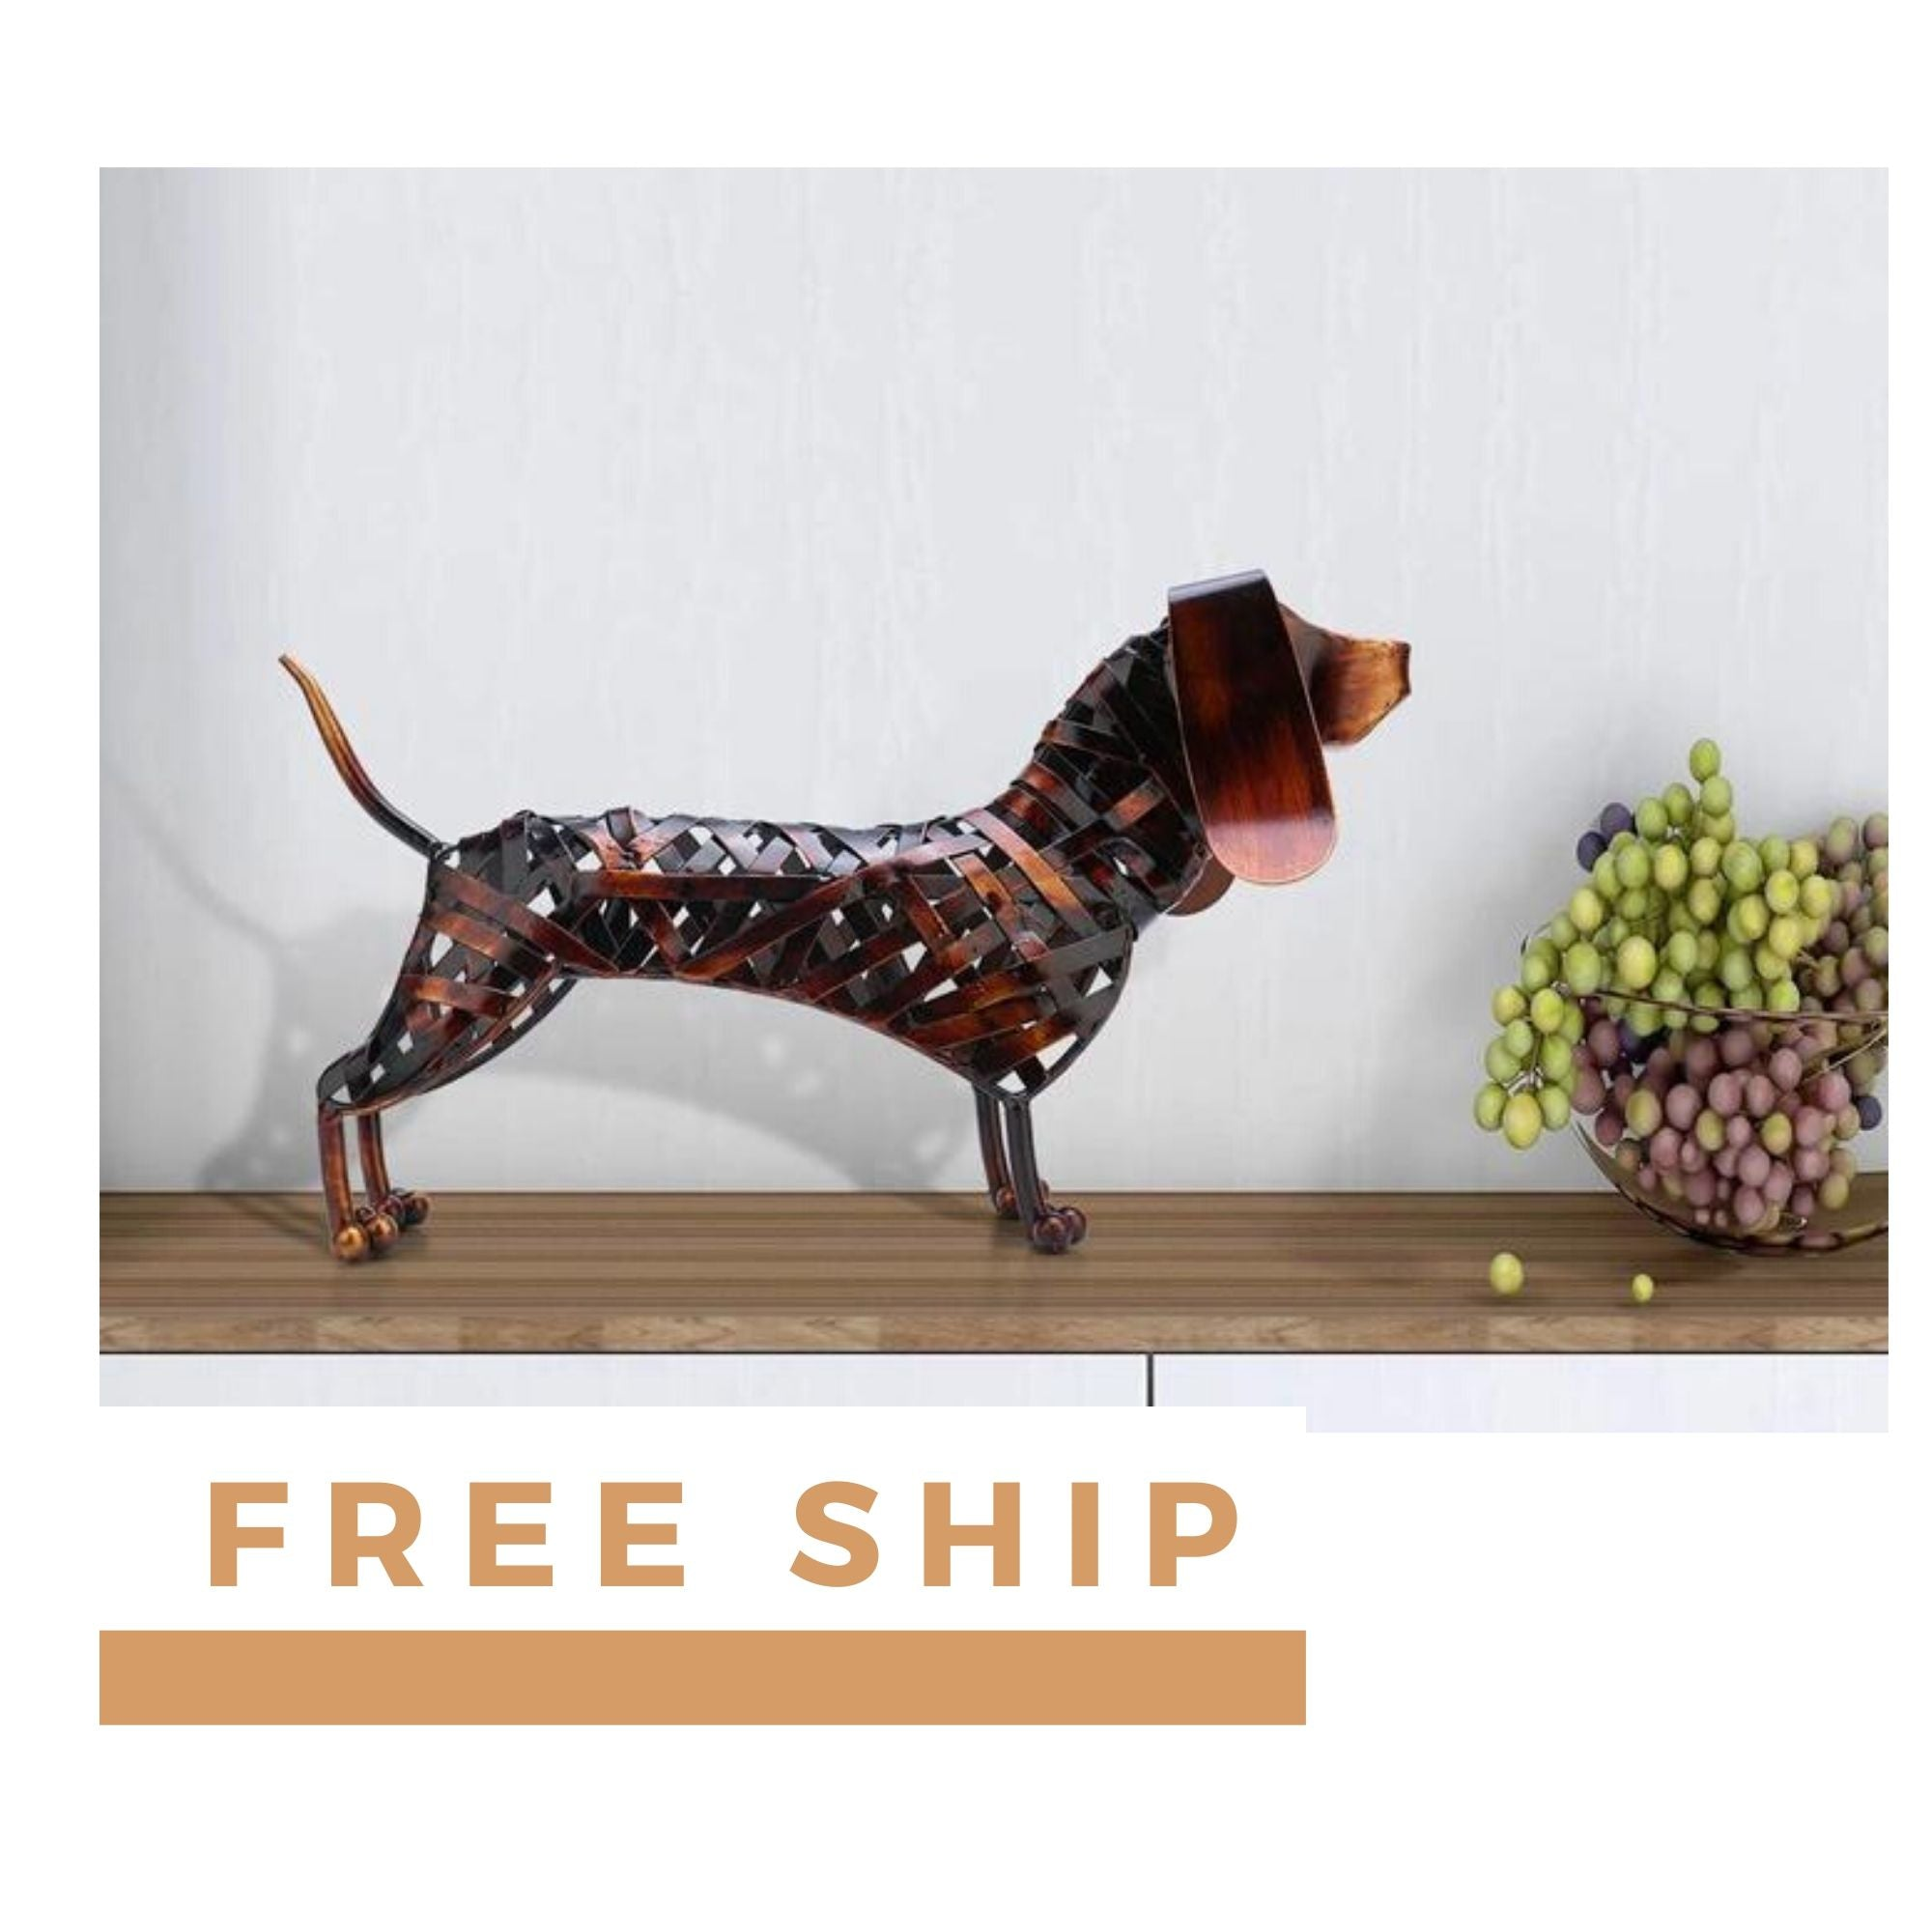 Emotional Dachshund Home Decor Accessories with Metal Dog Sculpture